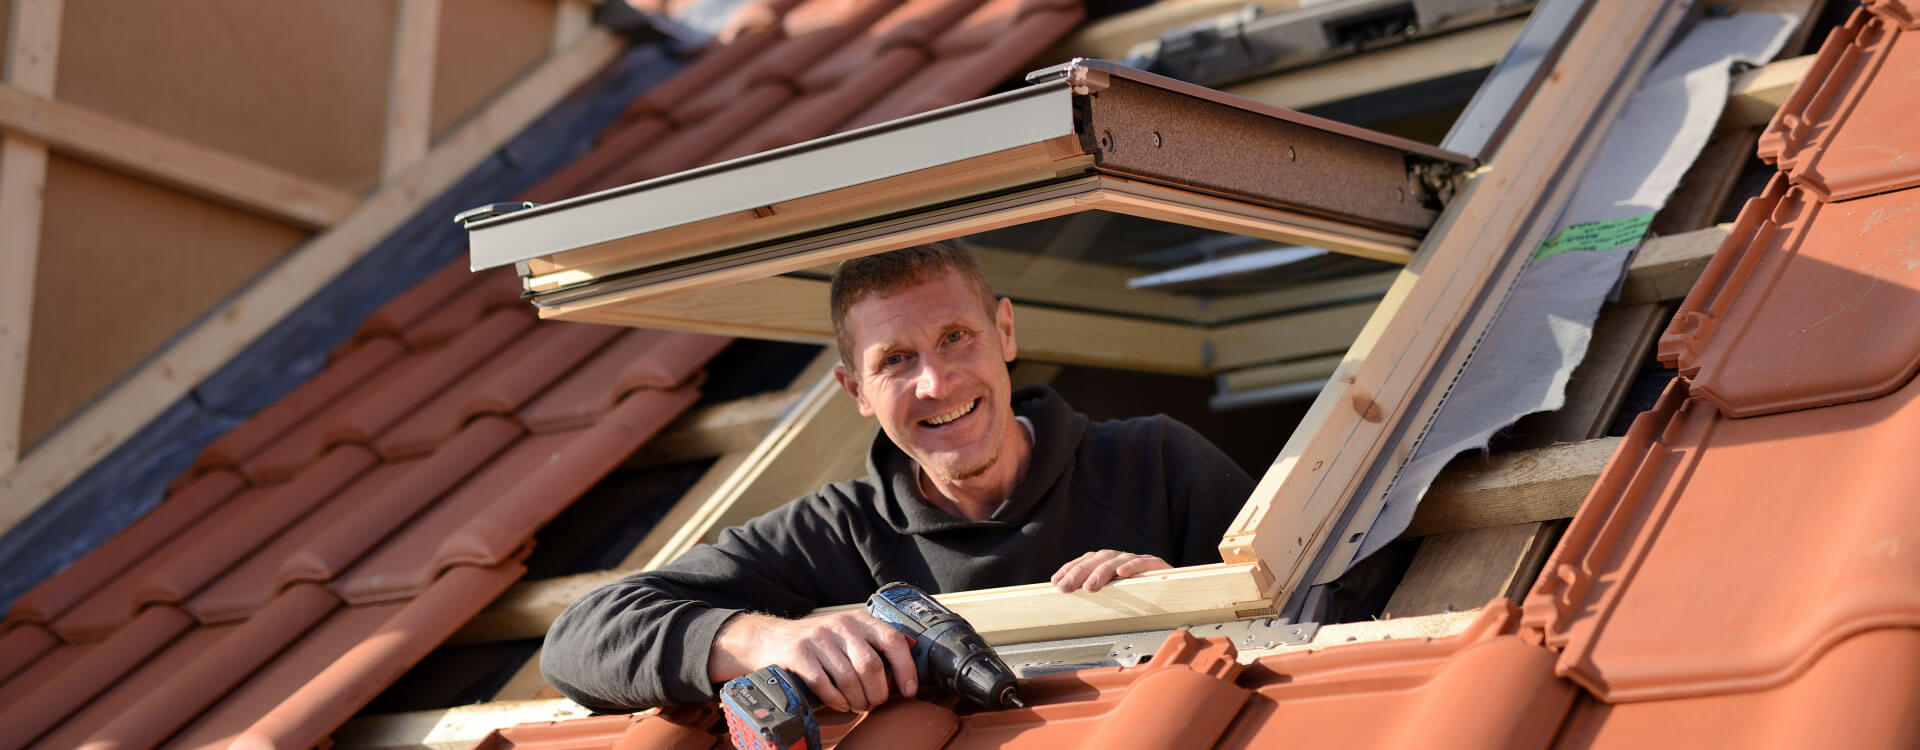 Velux Windows & Light Tunnels Installation in Esher, Cobham and Guildford